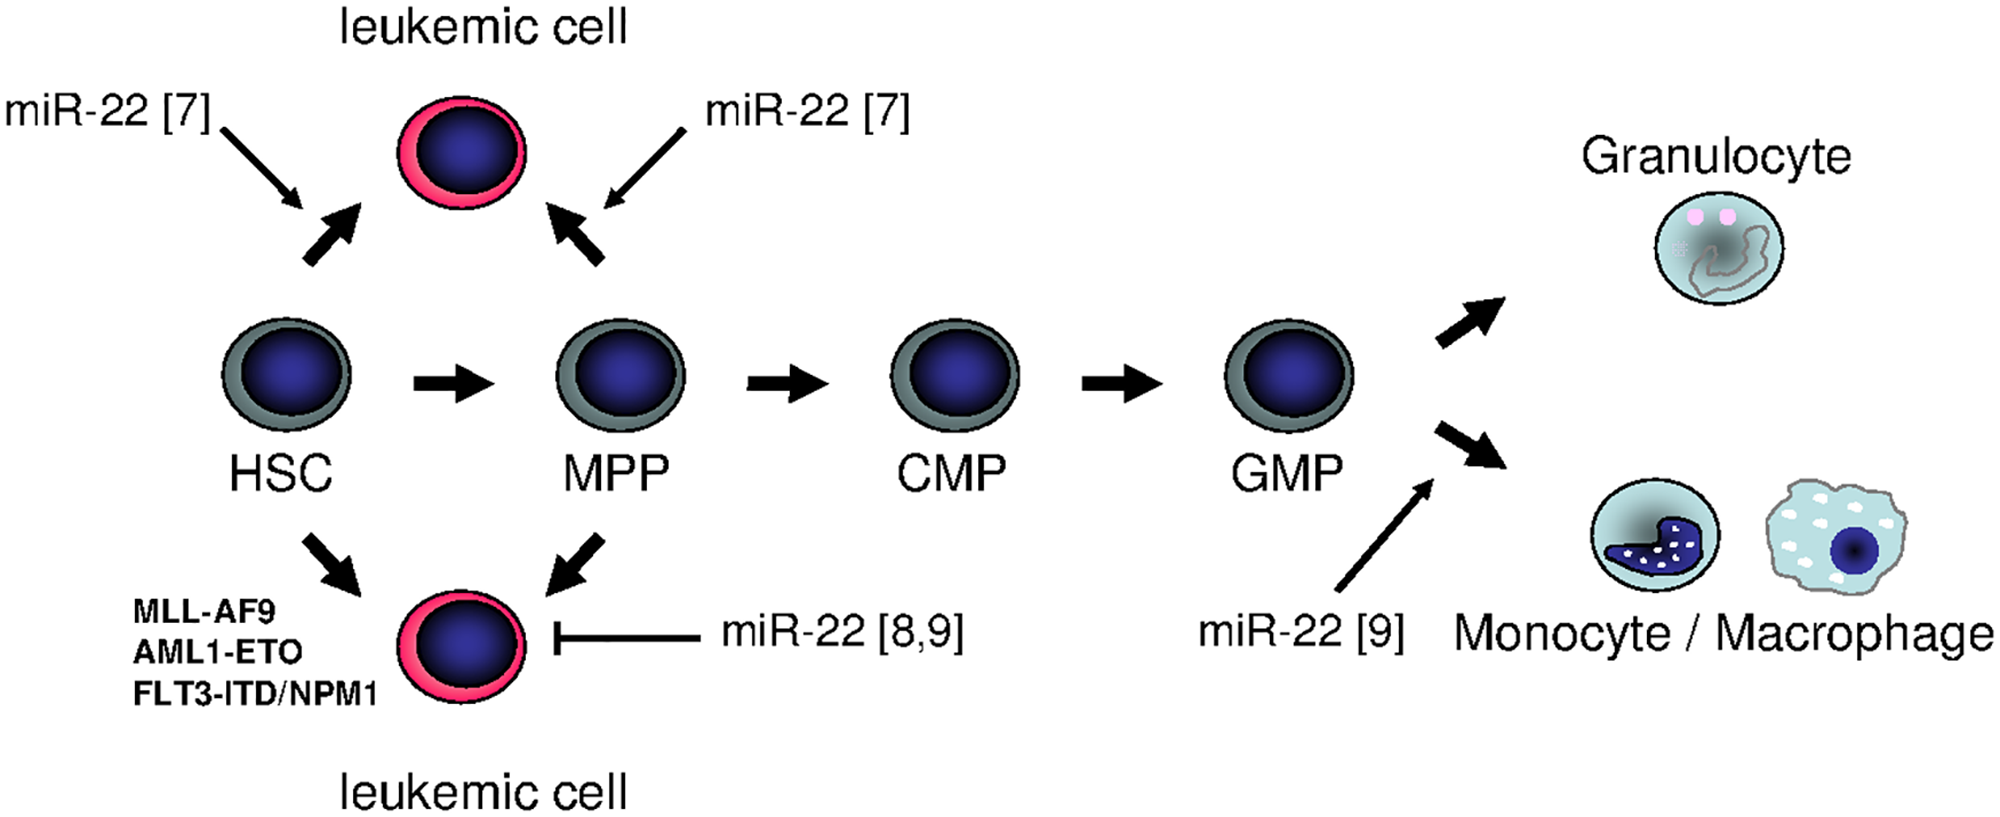 Summary of different functions of miR-22 in hematopoiesis: is miR-22 an oncogenic tumor suppressor or rather a tumor-suppressive oncogene?